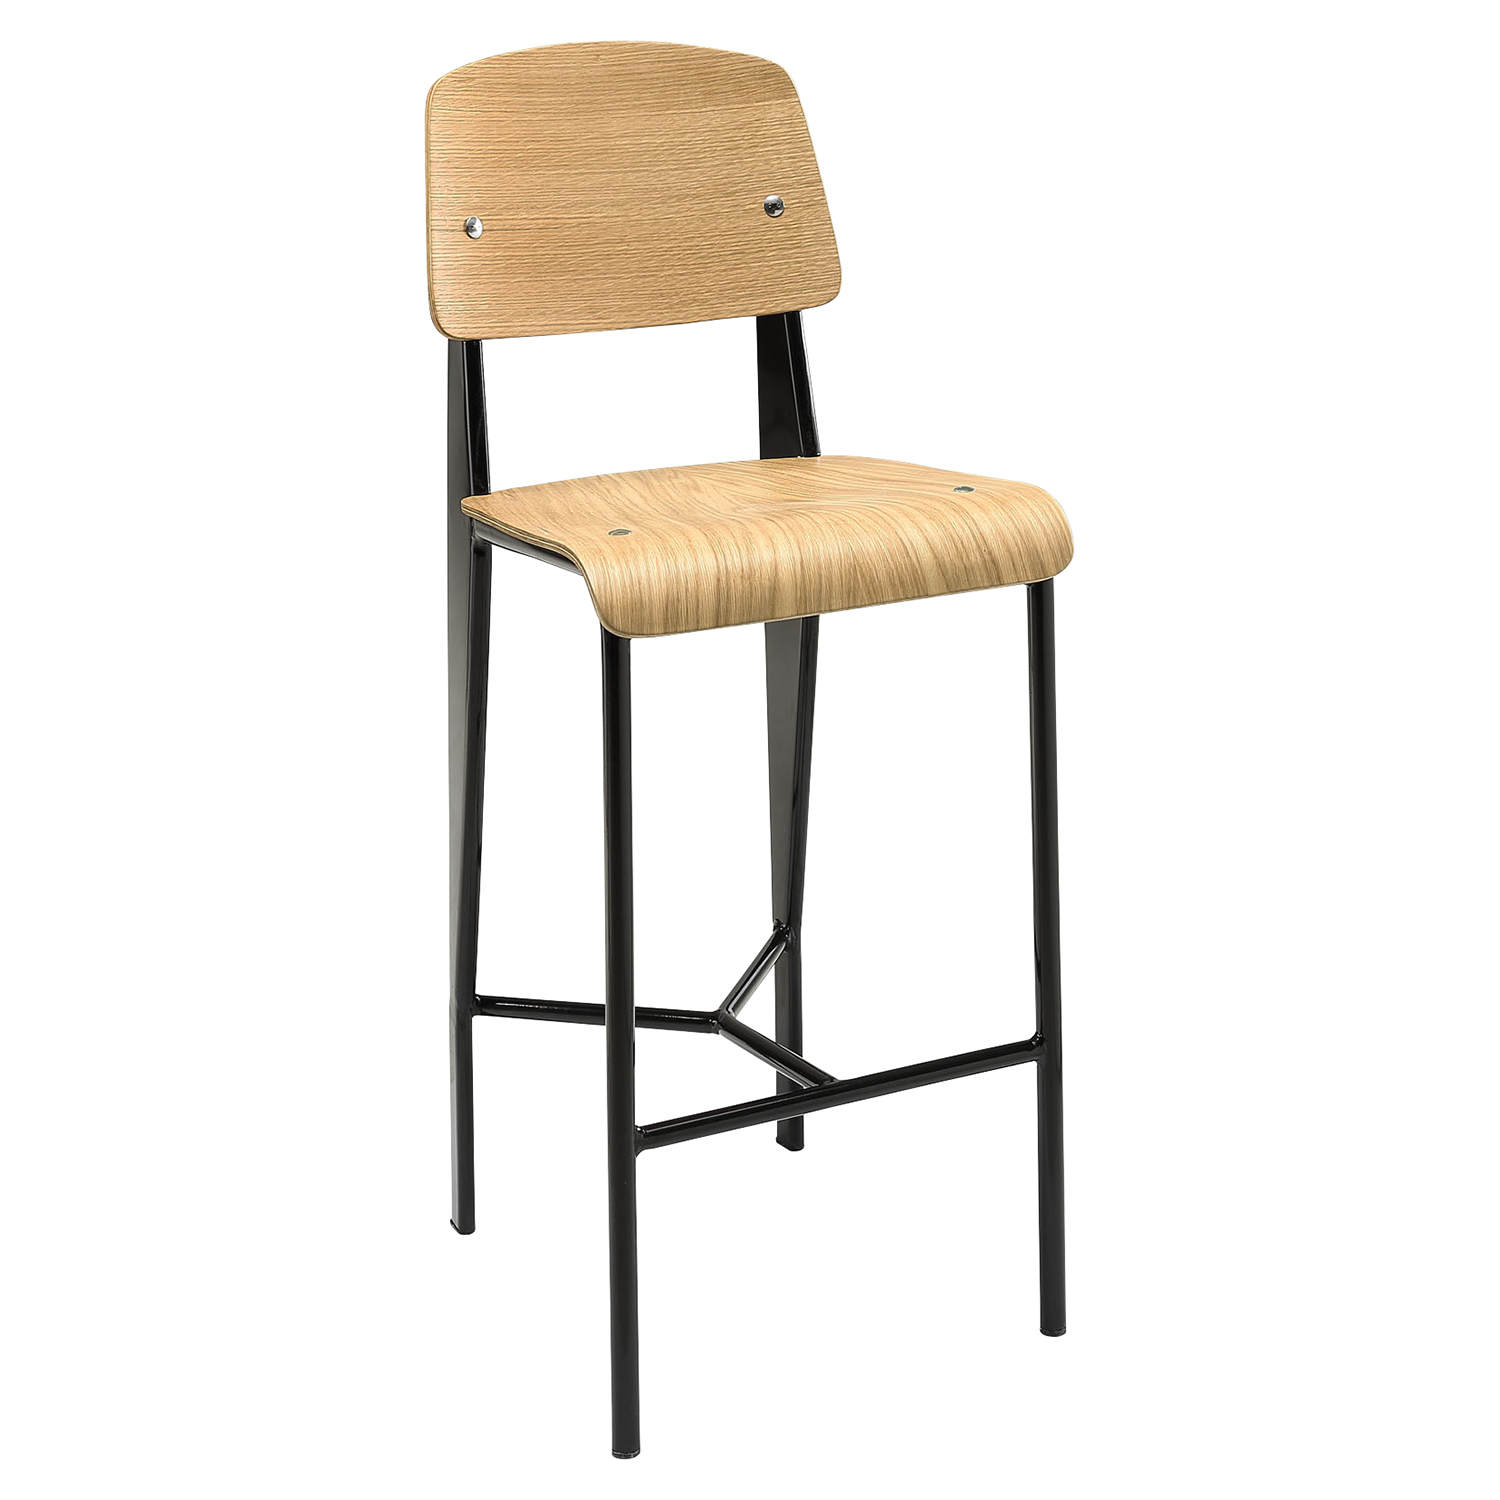 Cabin Counter Stool - Natural, Black